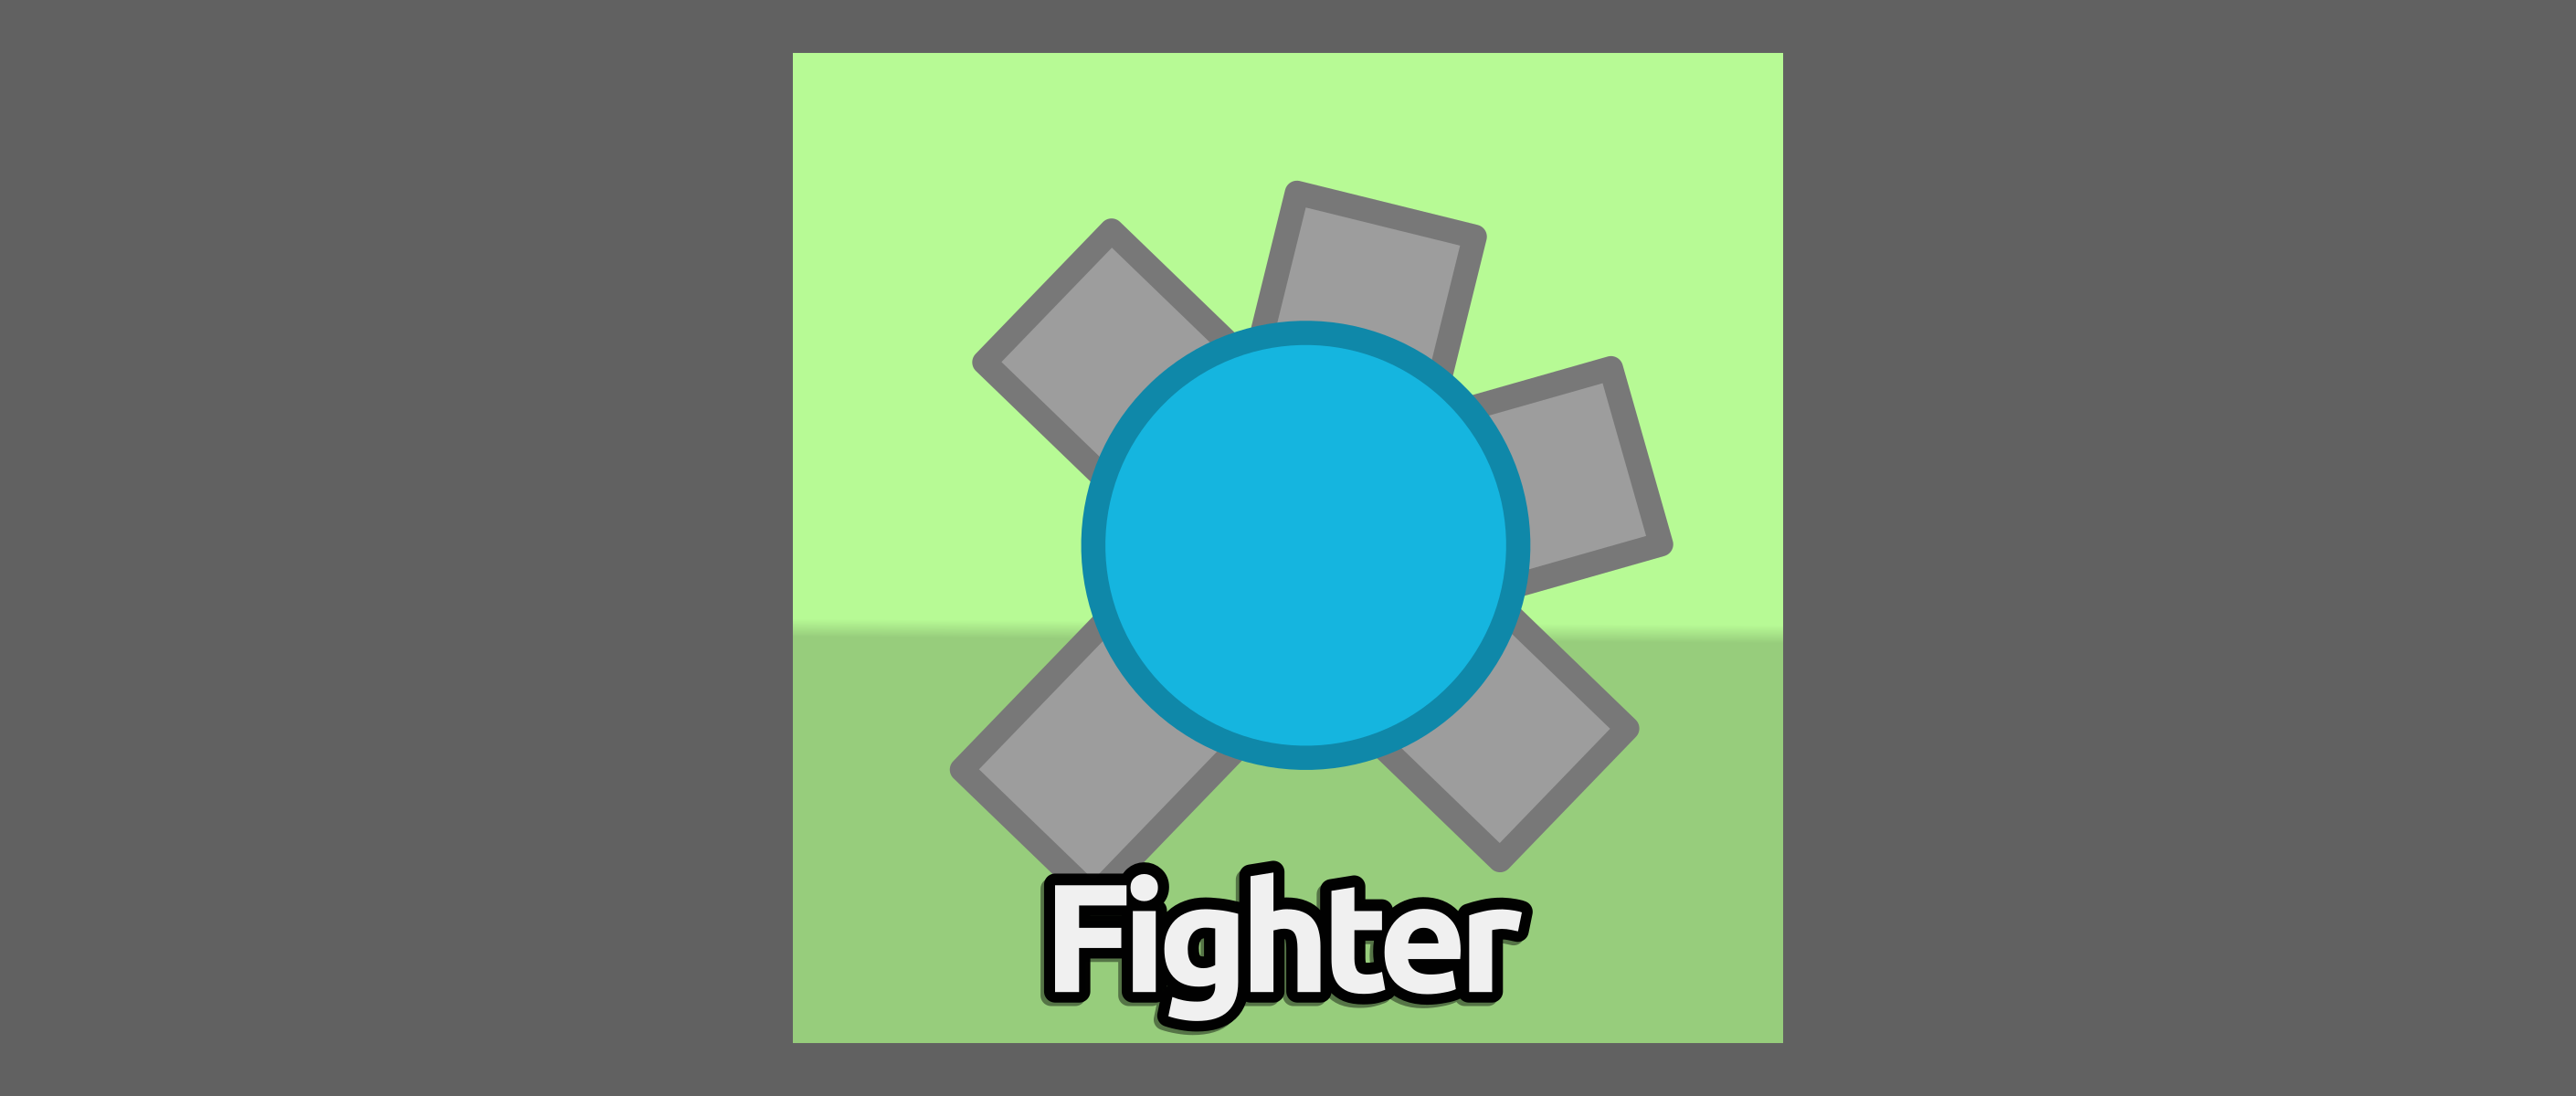 Fighter | Diep.io Wikia | FANDOM powered by Wikia